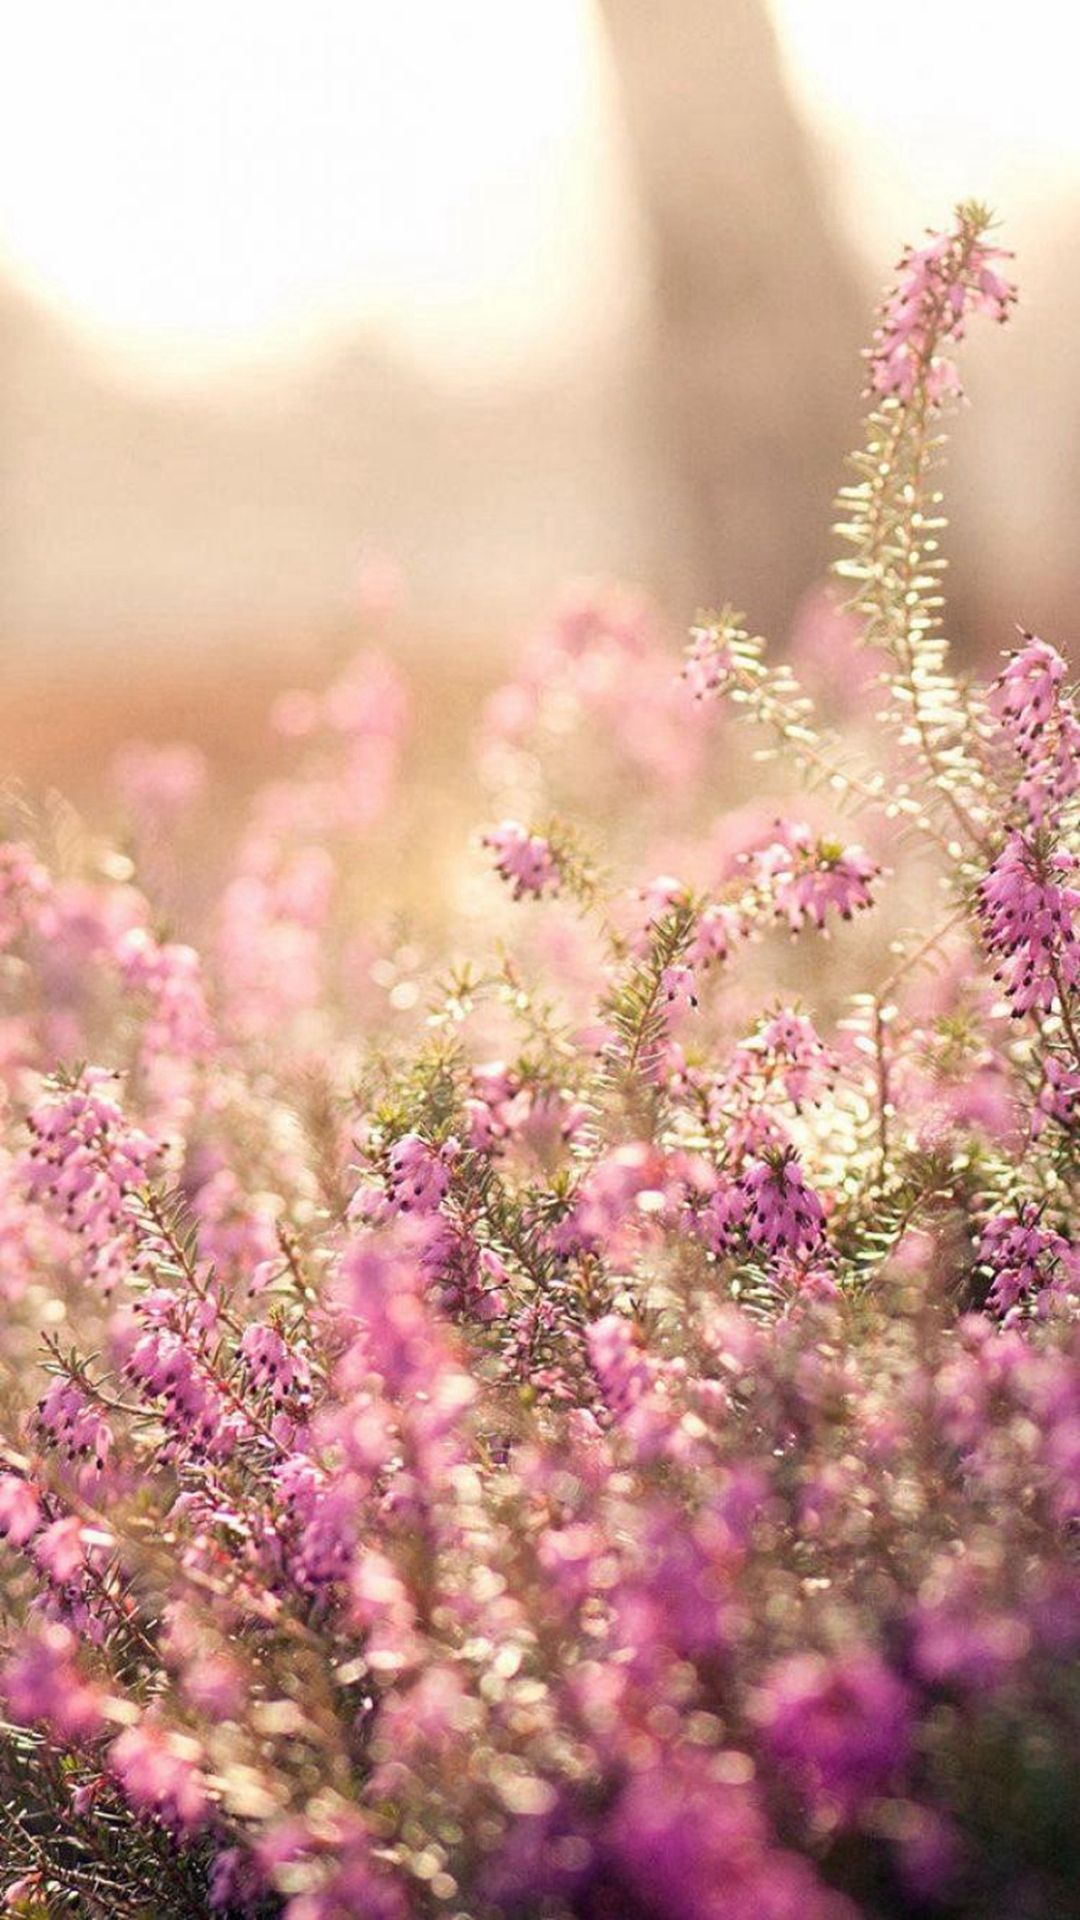 Nature Spring Bloomy Flowers Blurry IPhone 6 Wallpaper Download